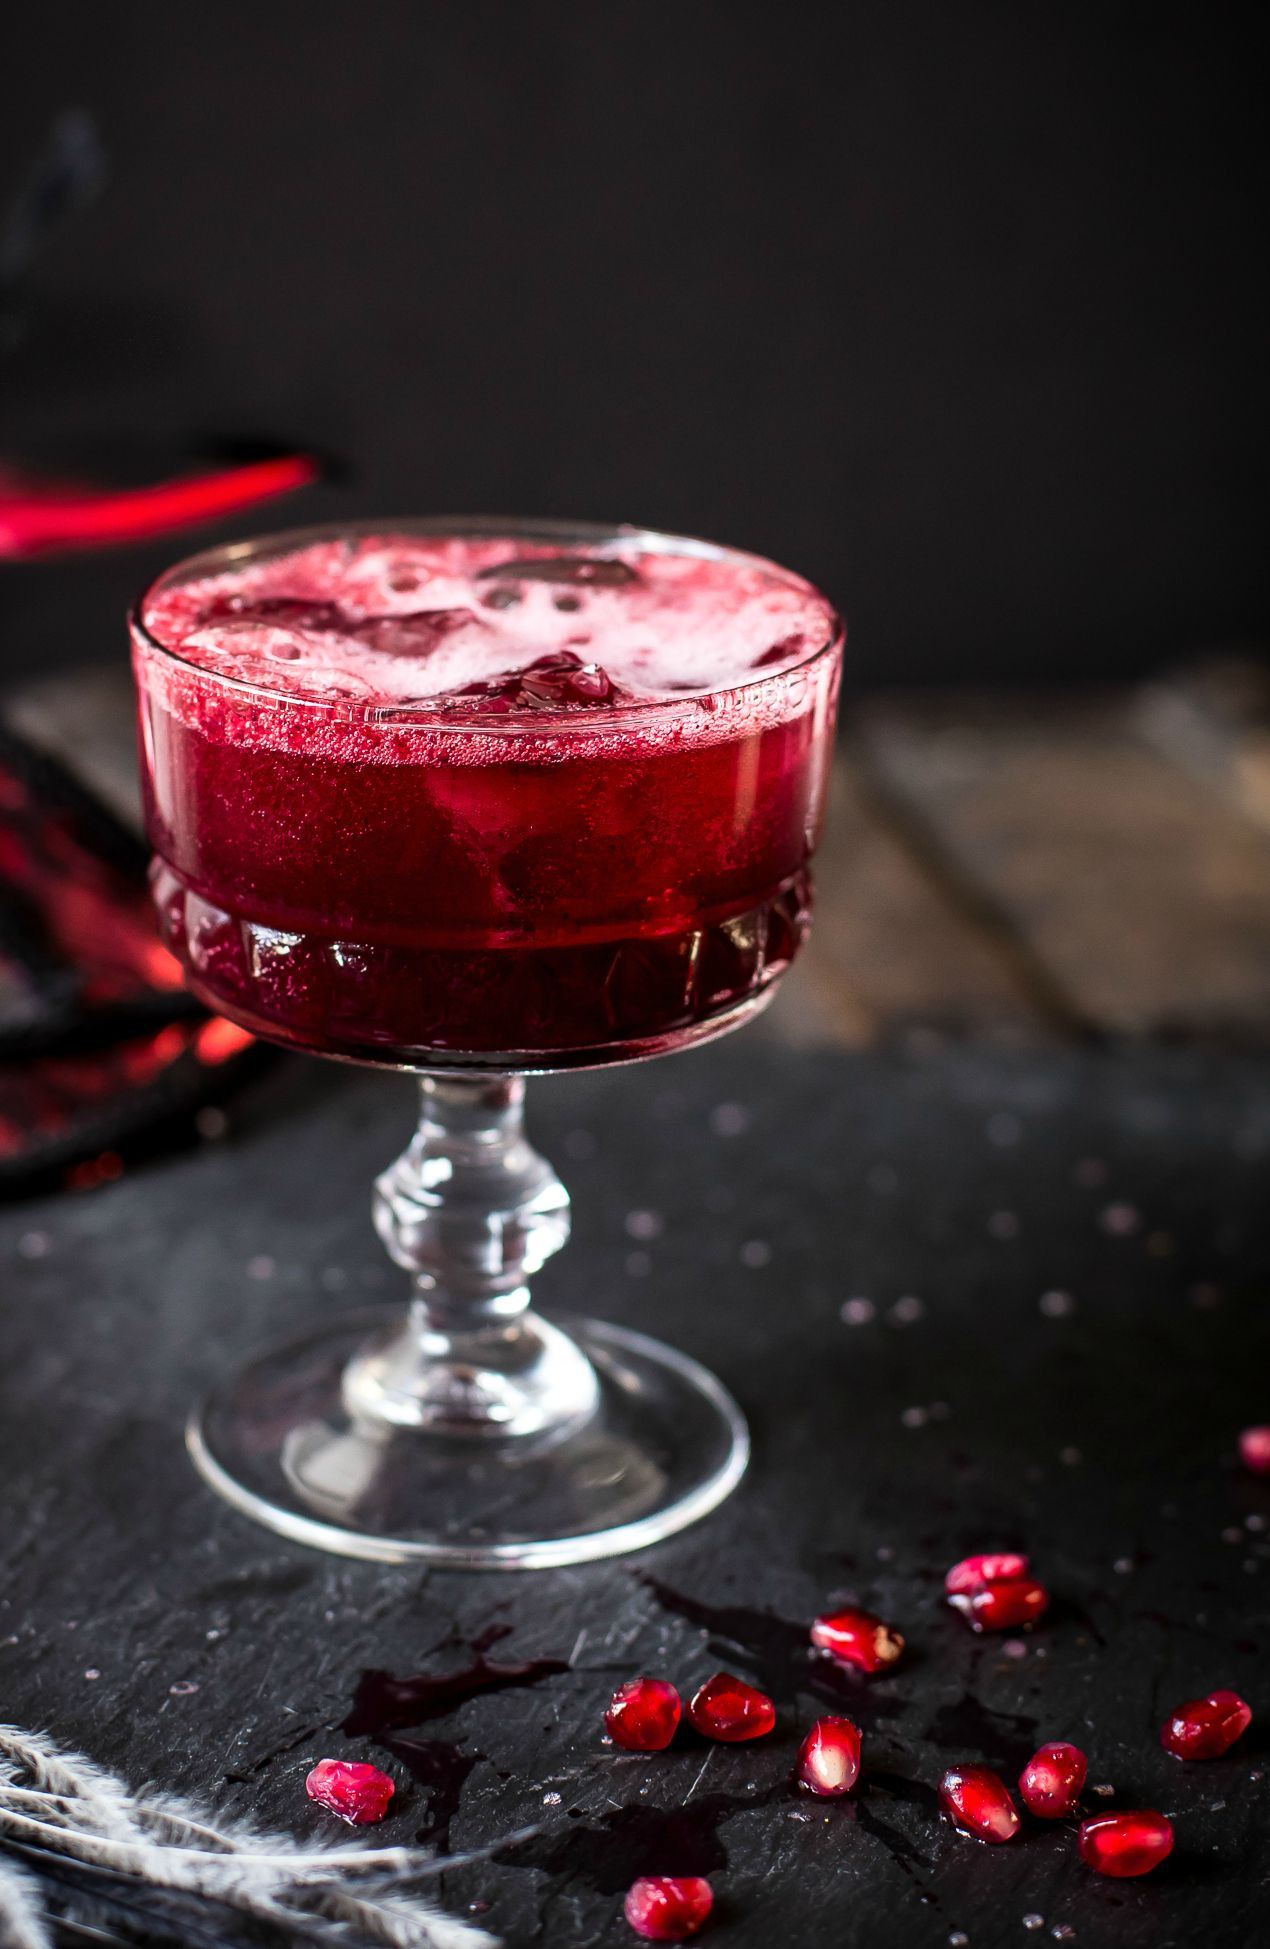 This Sparkling Berry Crush Is Light And Refreshing Made With Crushed Seasonal Berries And Pomegranate Seeds It Boasts Deep Food Berries Valentine S Day Drinks